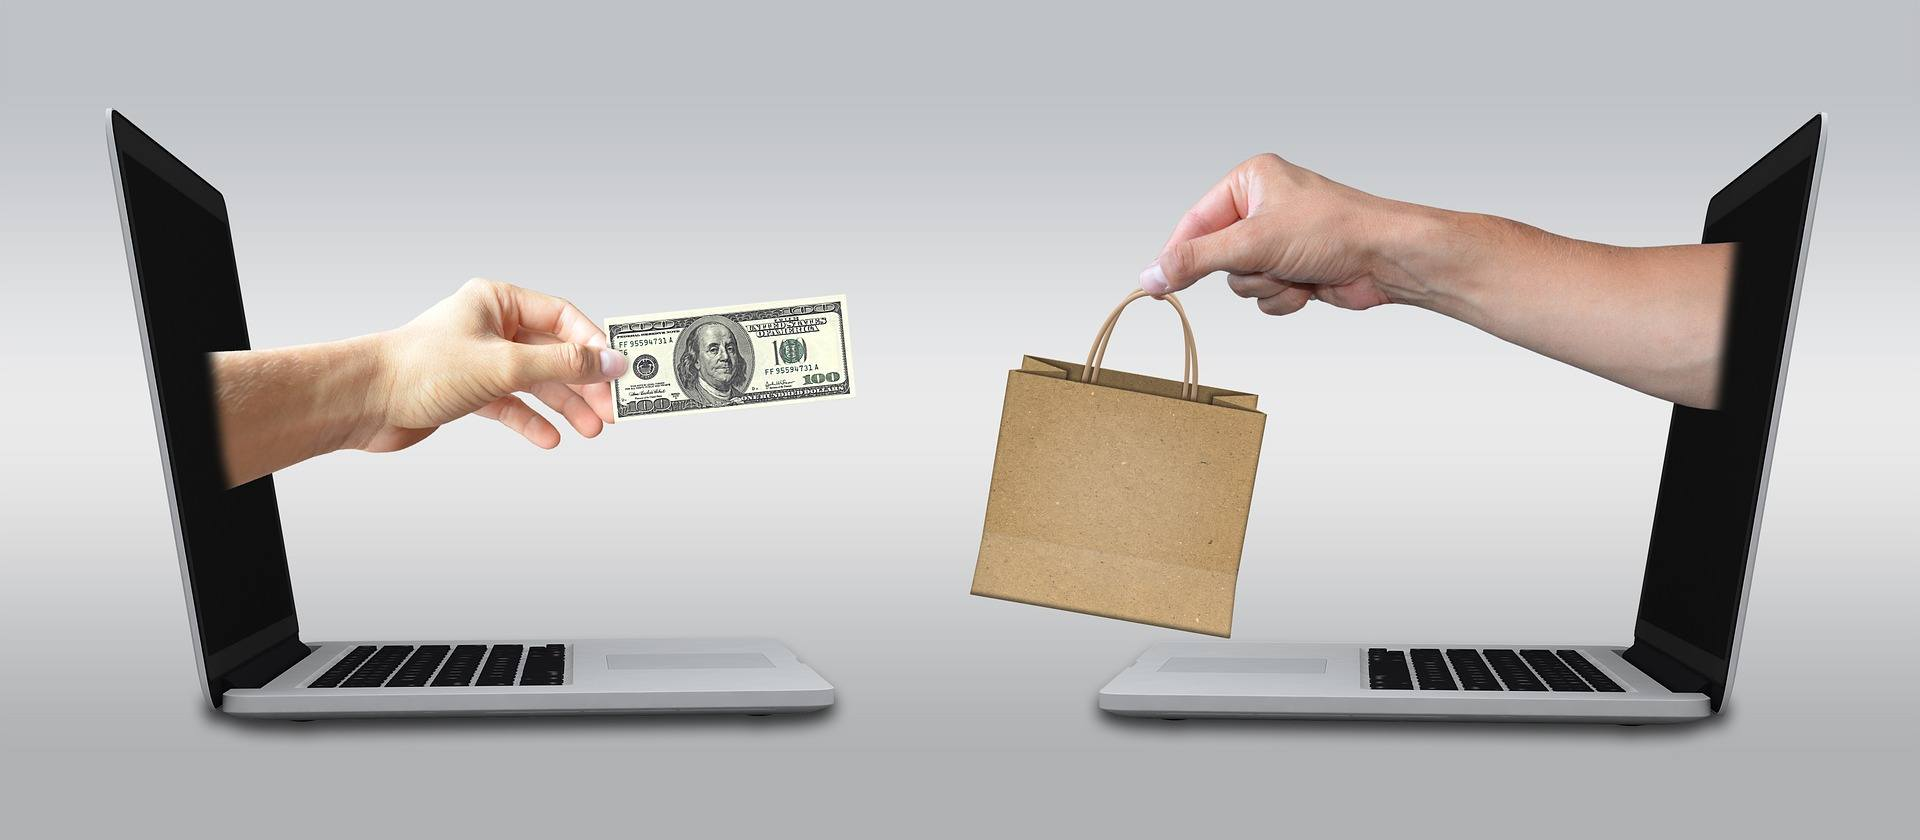 How to Make Money Selling Other People's Products Online